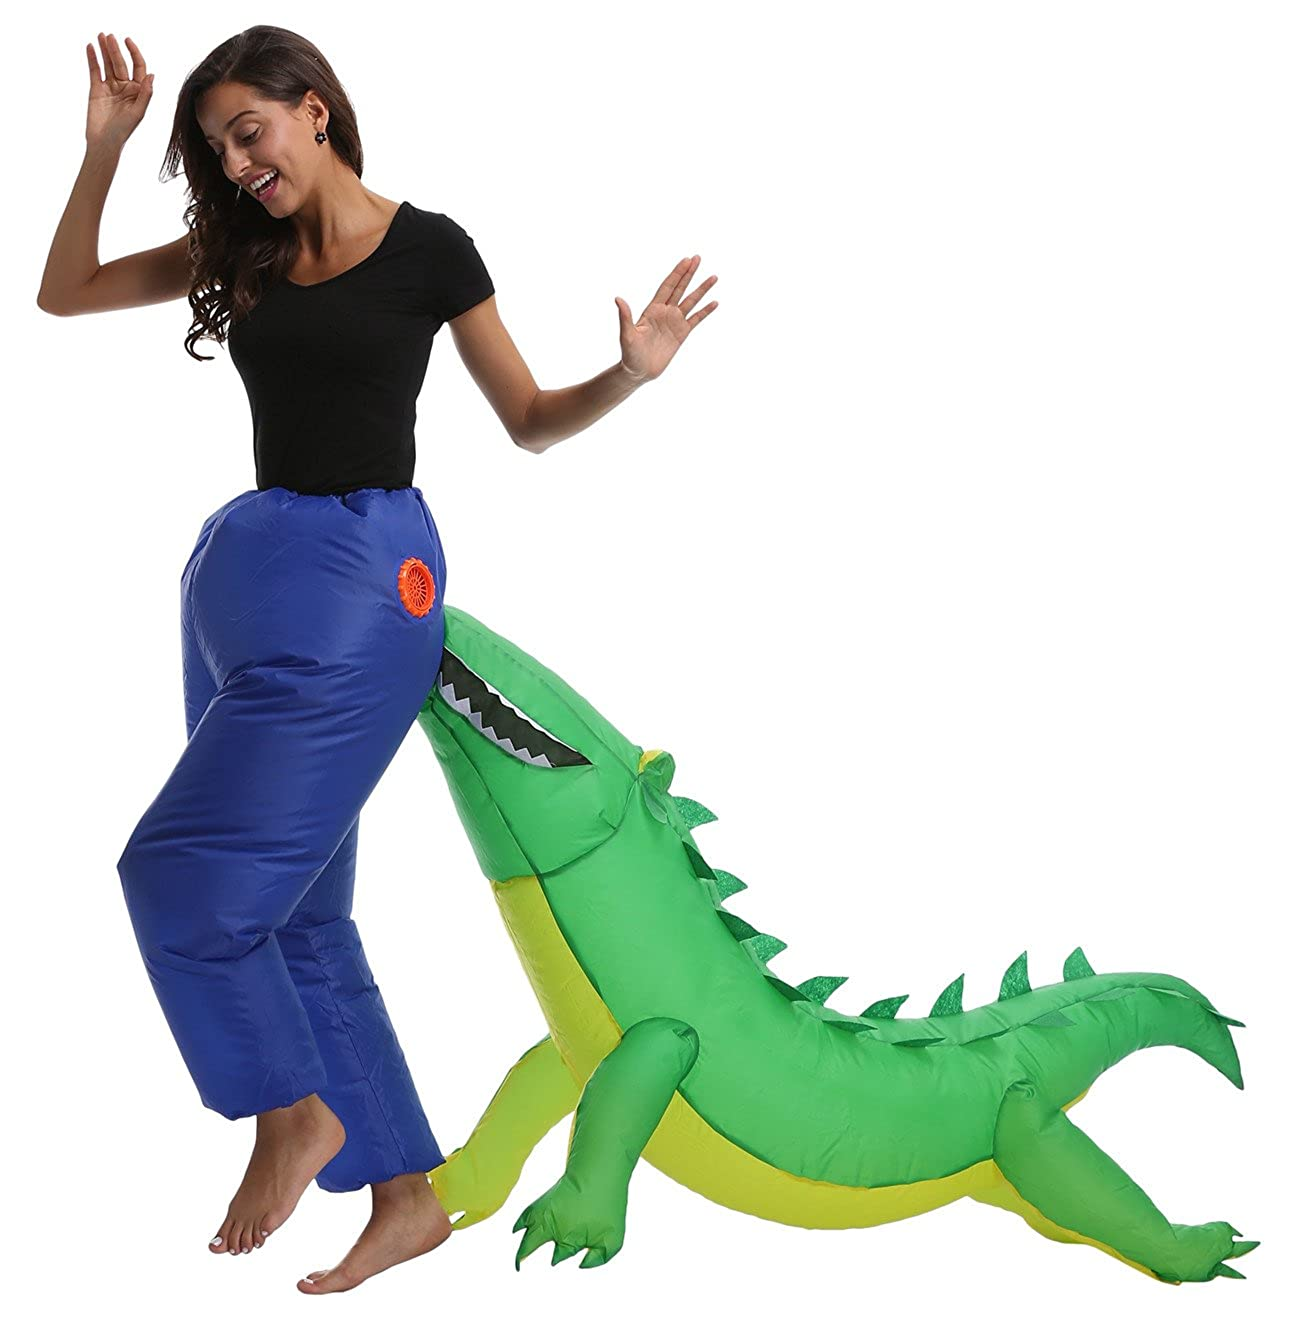 Amazon.com: emilystore hinchable Costume Piggyback disfraz ...